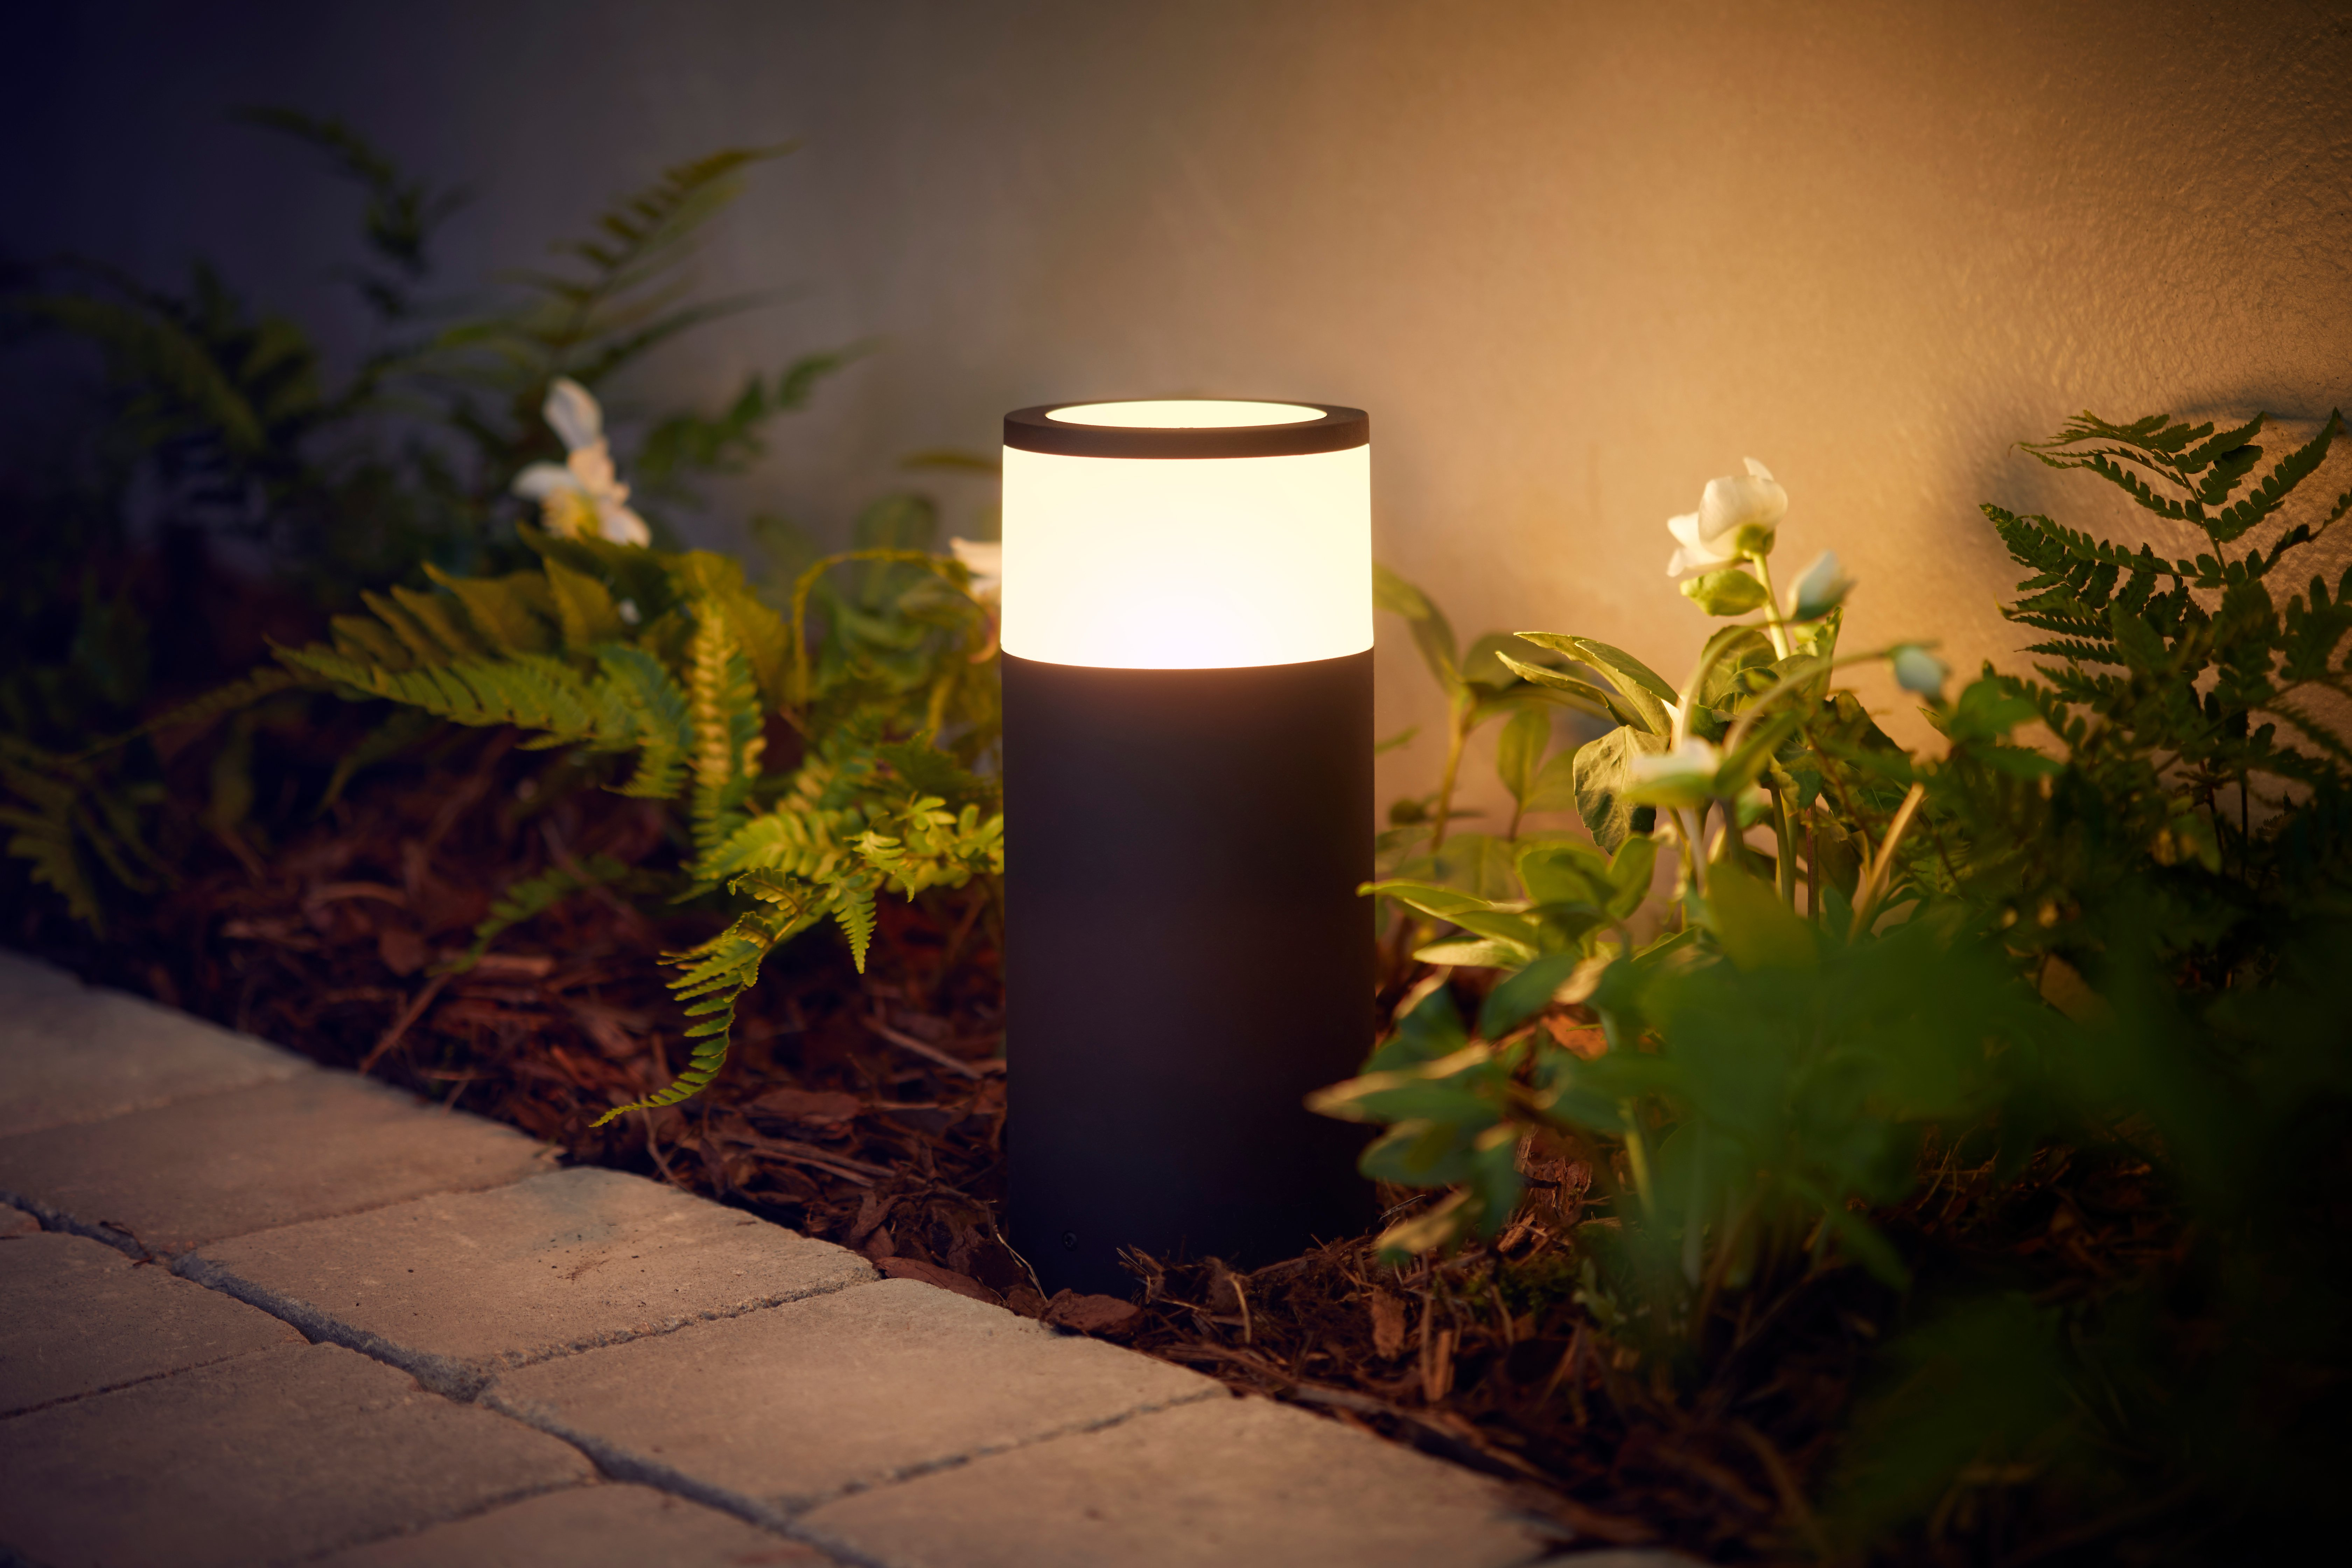 Philips Hue Outdoor Lighting Products Coming This Summer